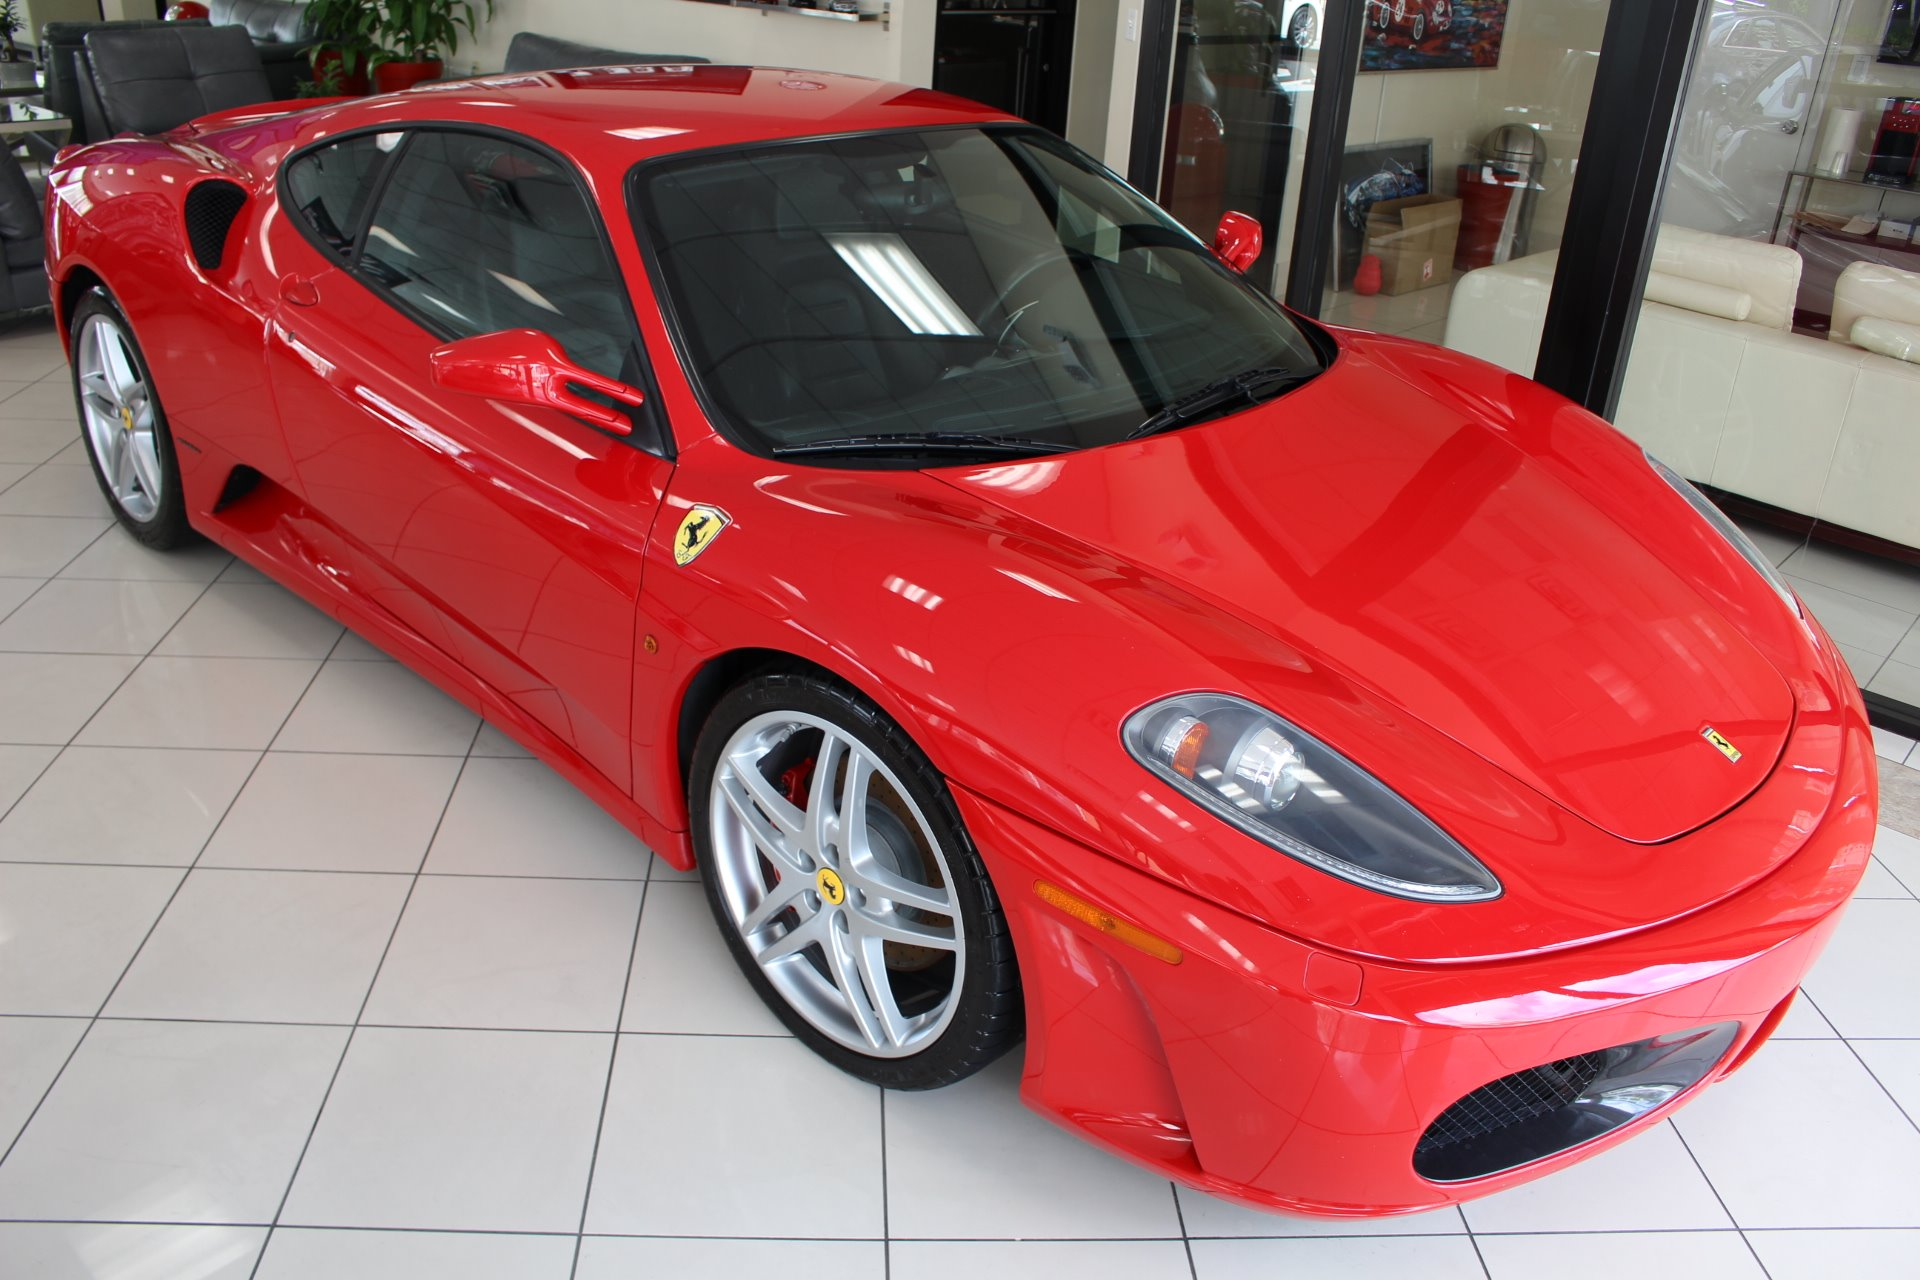 Used 2005 Ferrari F430 For Sale 85 850 The Gables Sports Cars Stock 141740